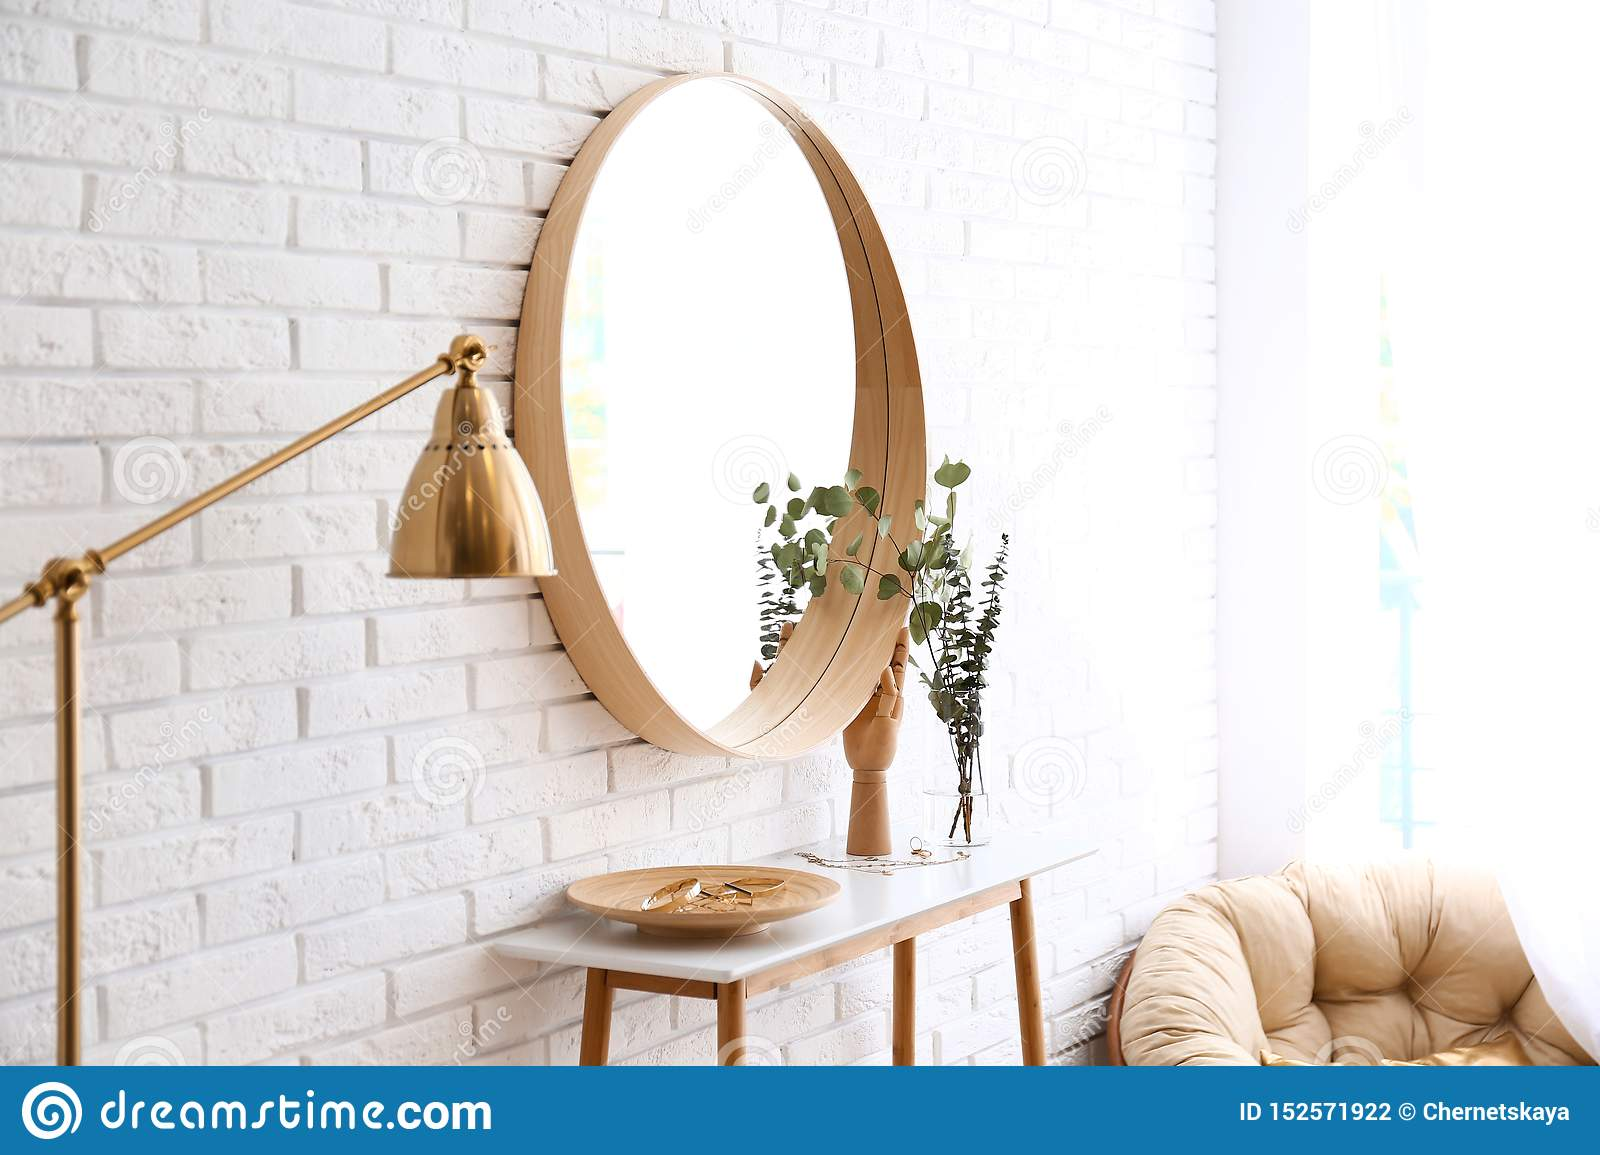 14 832 Decor Mirror Wall Photos Free Royalty Free Stock Photos From Dreamstime